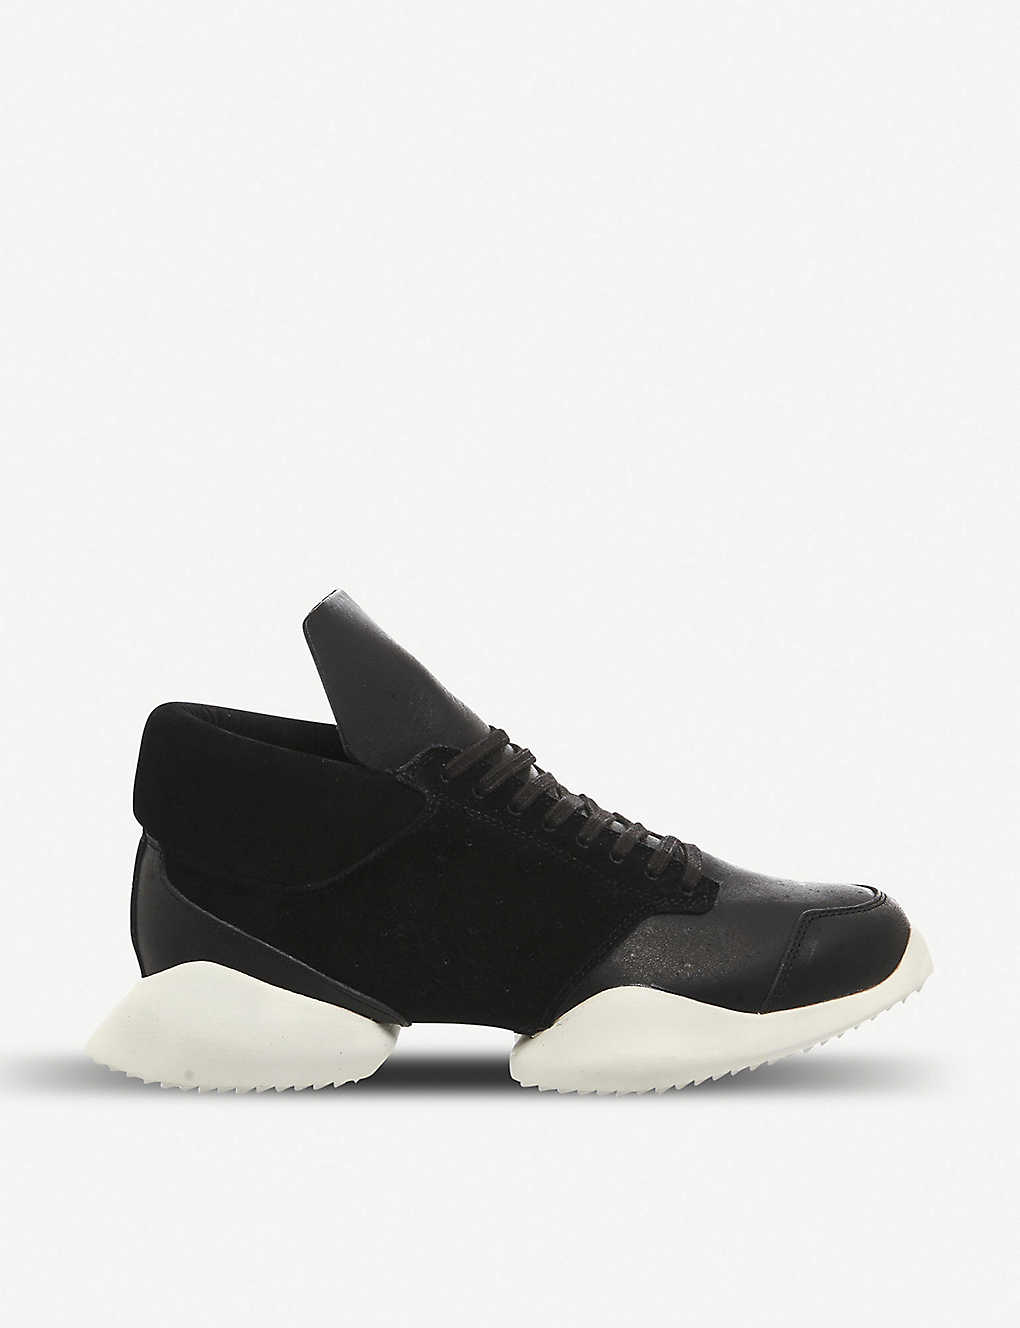 21bf7cba477 ADIDAS X RICK OWENS - Tech Runner leather trainers